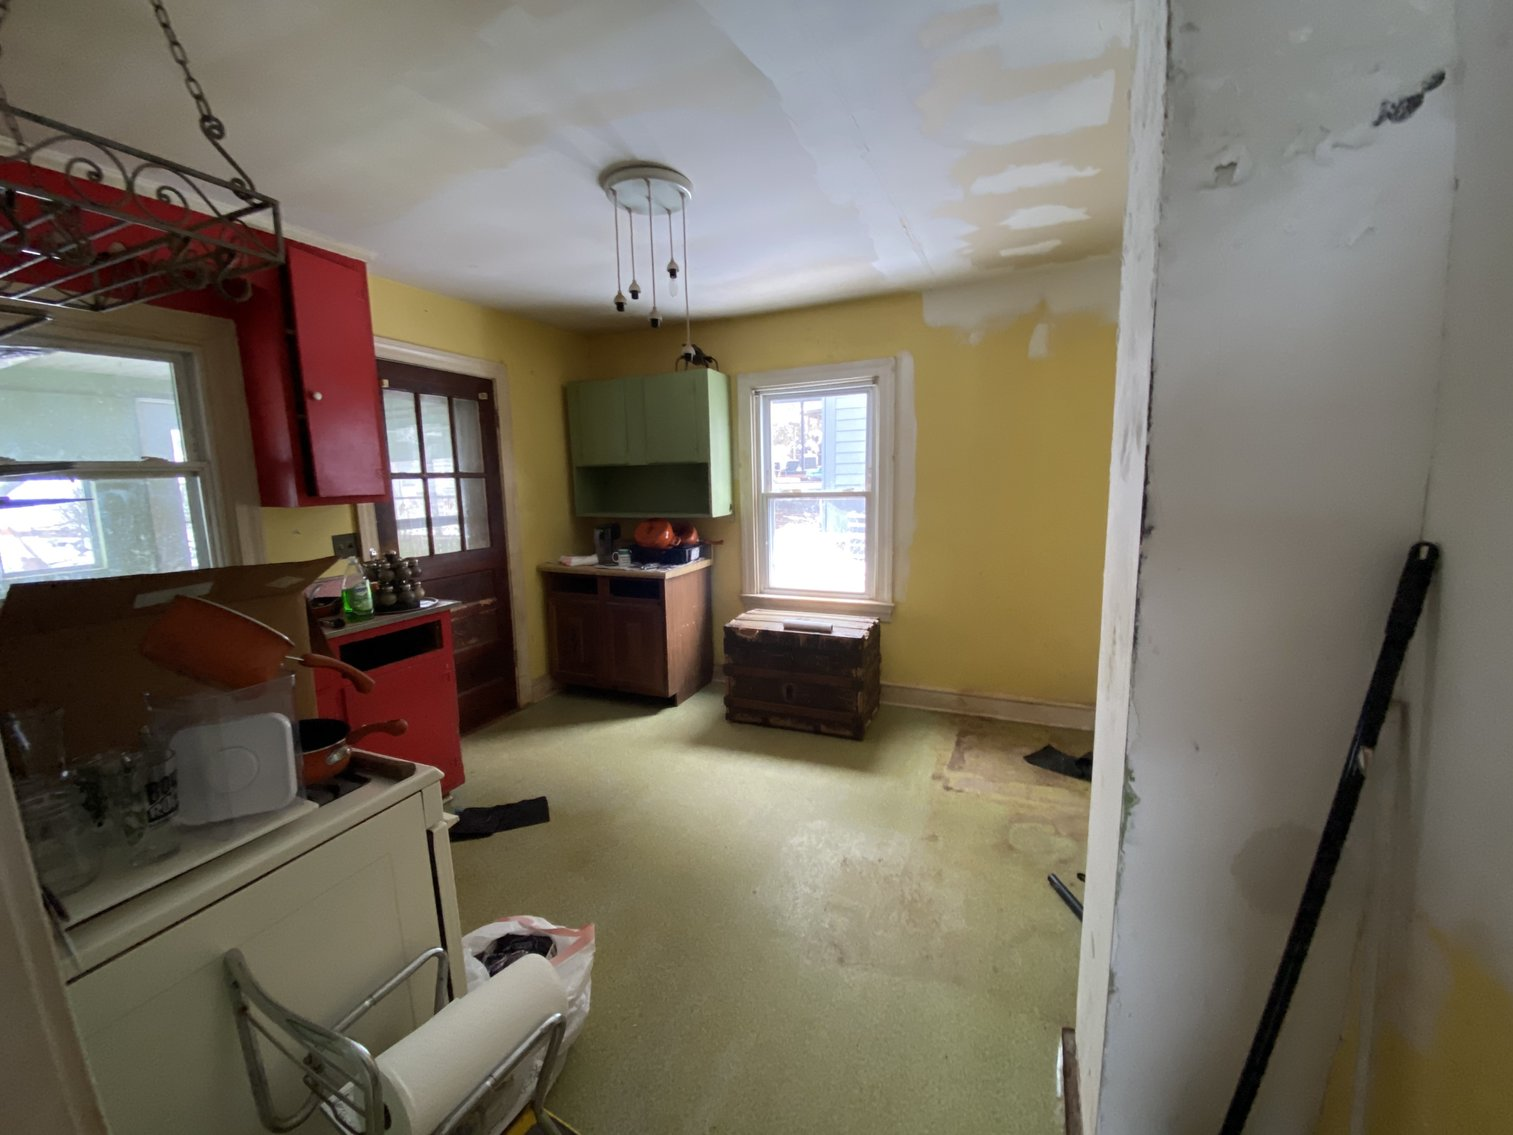 Image for  2 BR/1 BA Investment Property Minutes From UVA, Hospitals & I-64--SELLS to the HIGHEST BIDDER!!